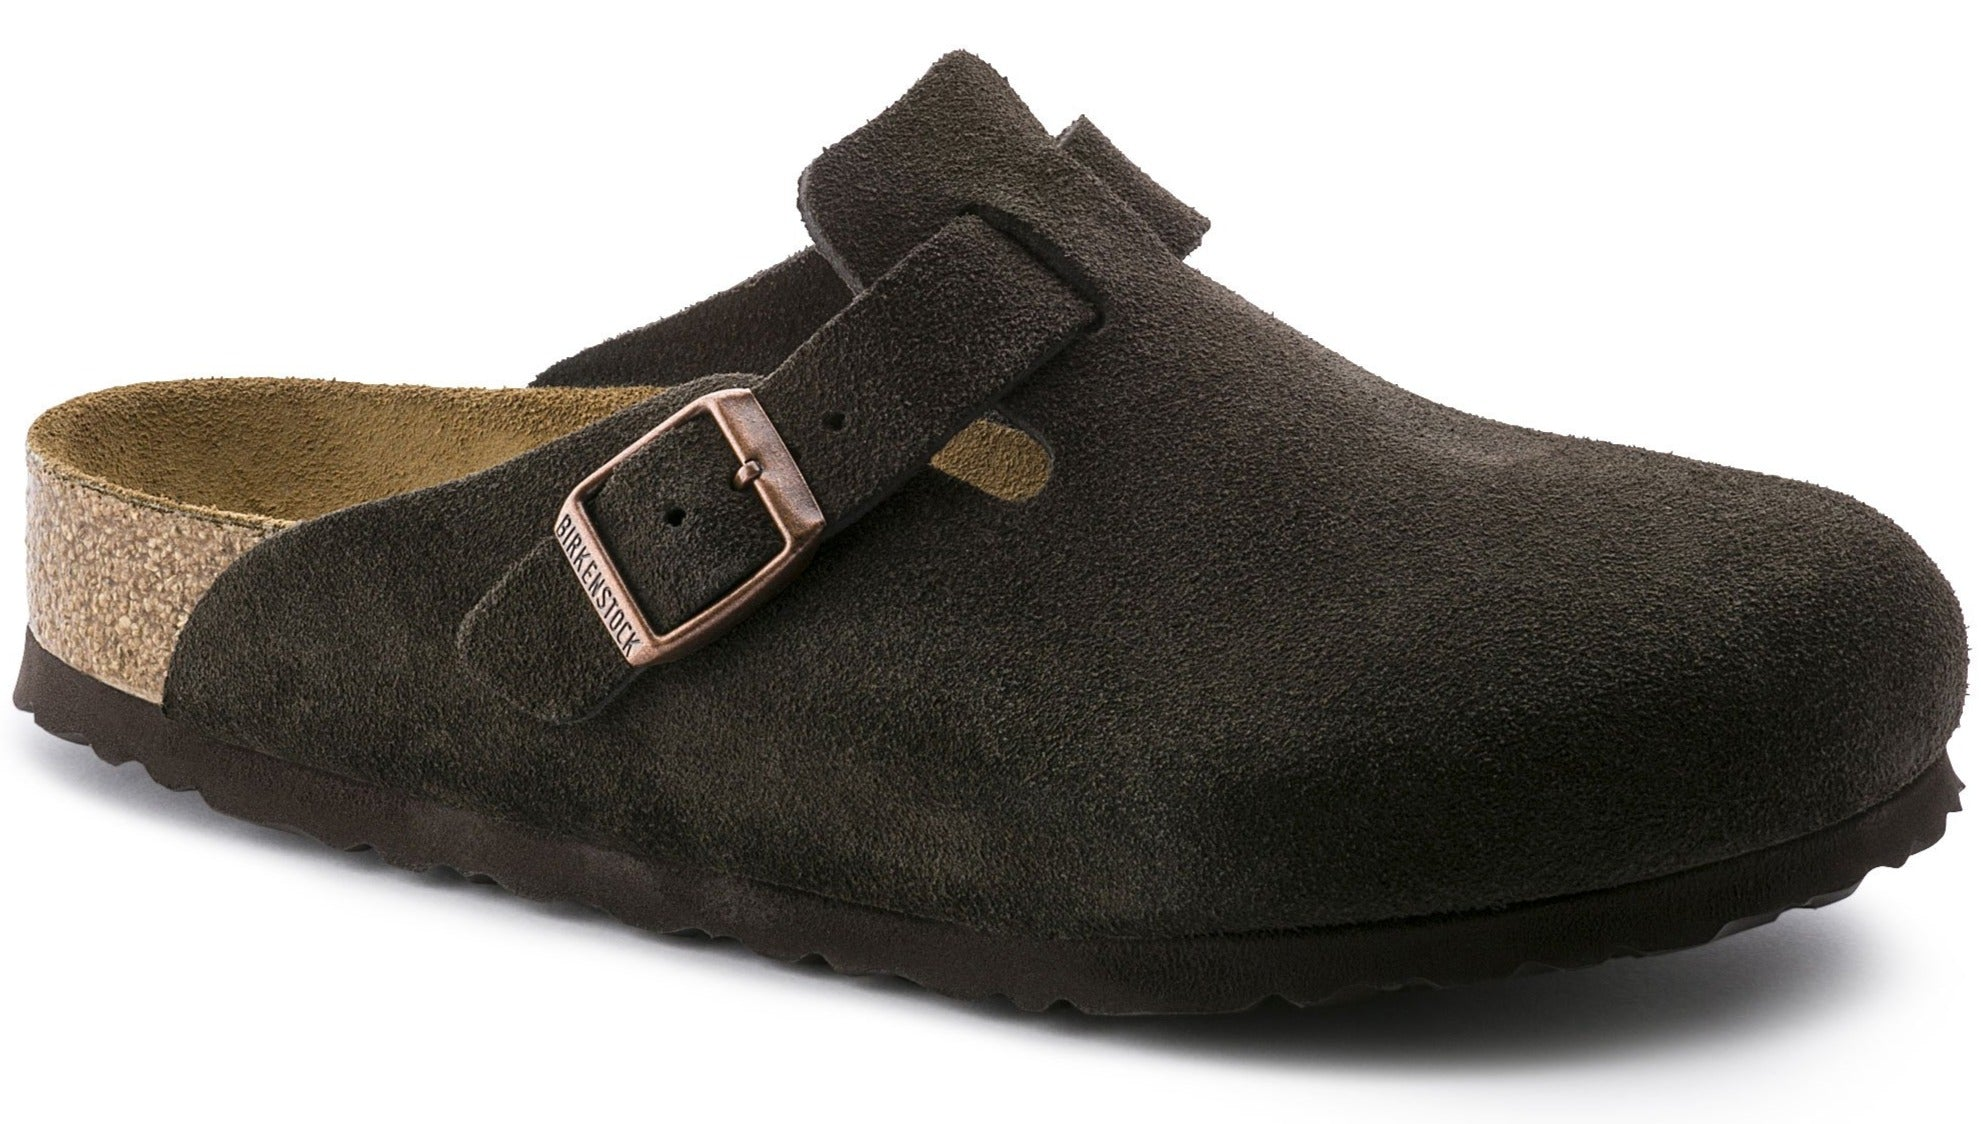 Boston Soft - Mocha Suede